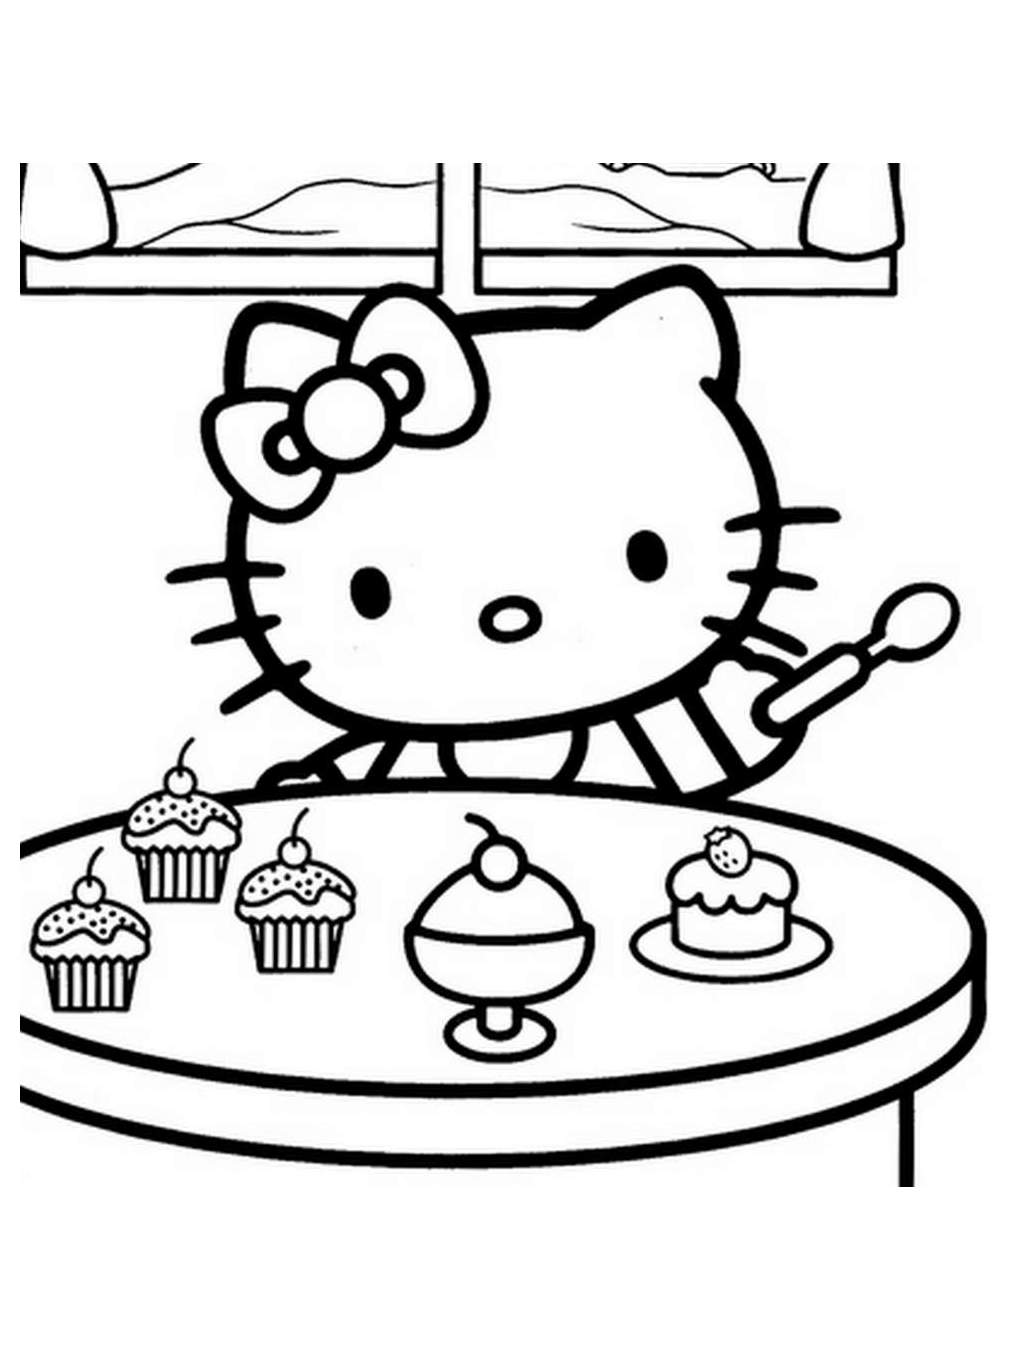 hello kitty coloring pages free printable november 2011 hello kitty kitty free coloring printable pages hello